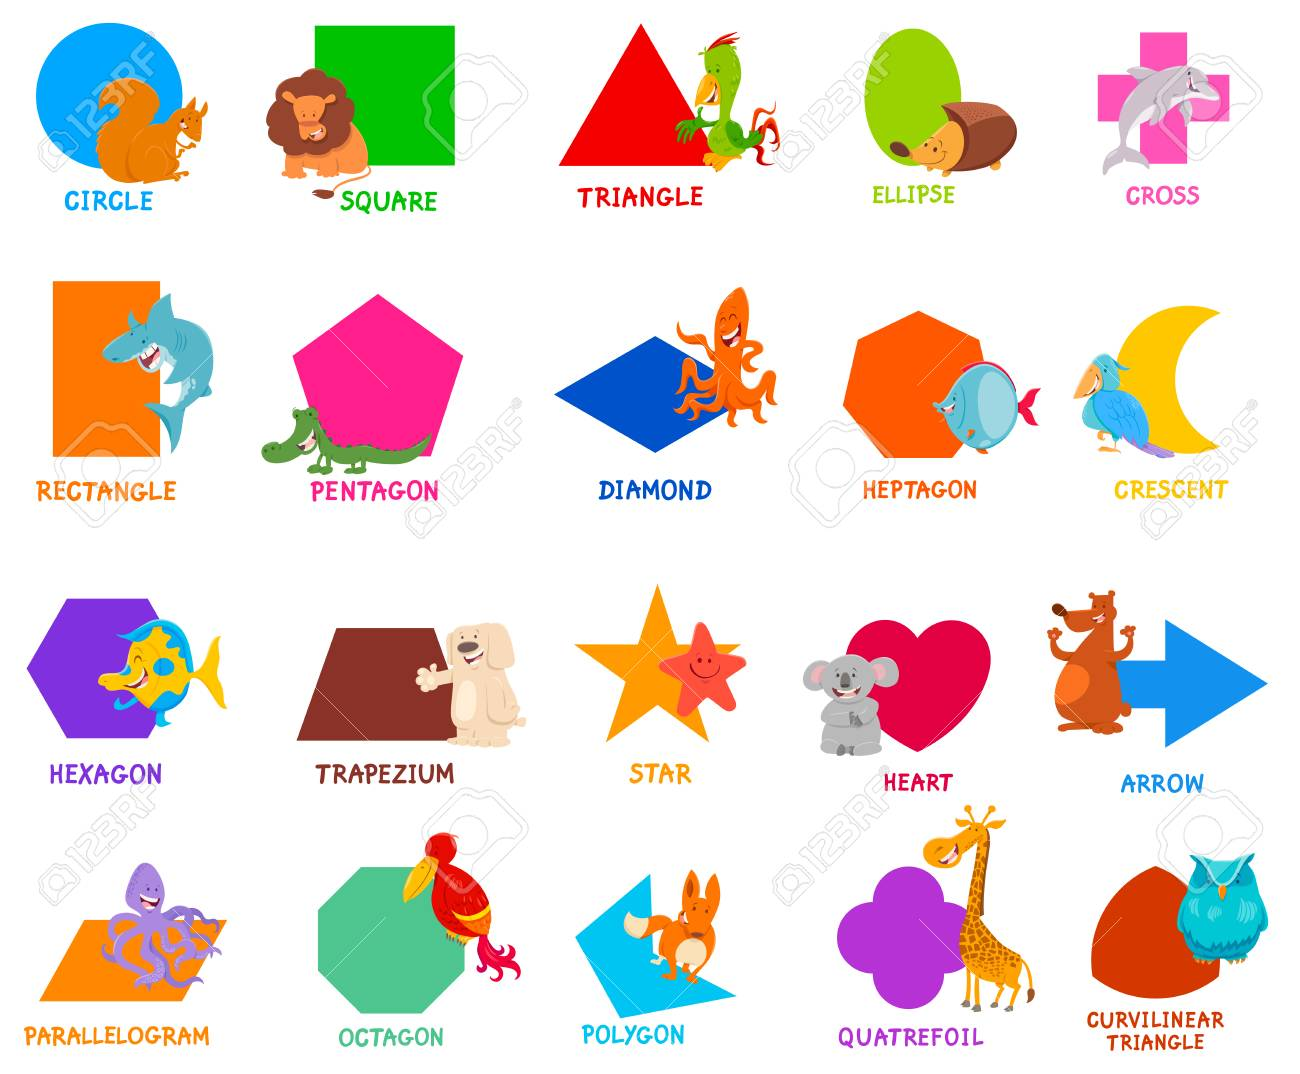 Cartoon Illustration of Educational Basic Geometric Shapes for Preschool or Elementary School Children with Cute Animal Characters - 120202293